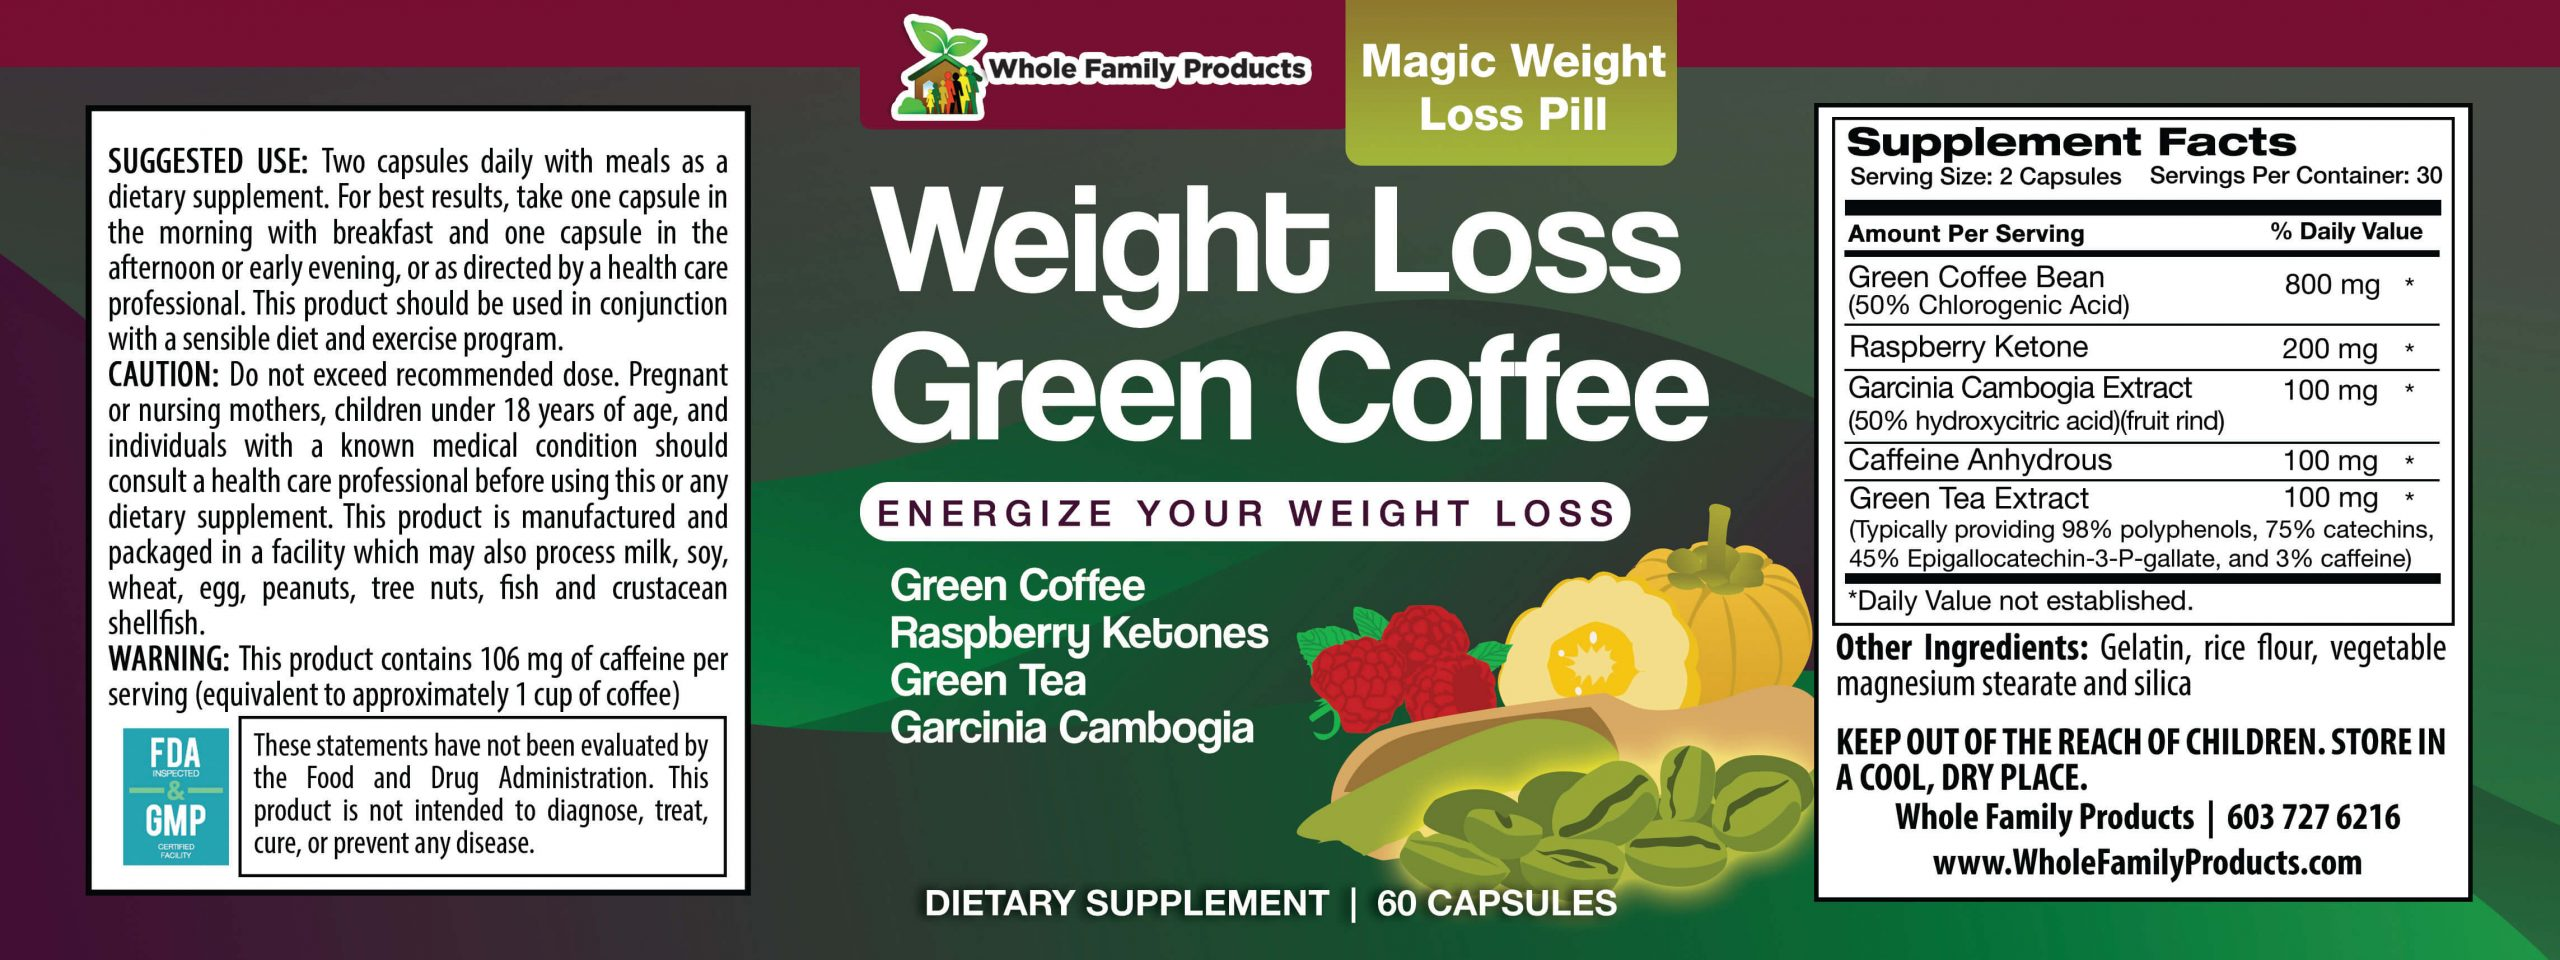 Weight Loss Green Coffee 60 Capsules WFP Product Label